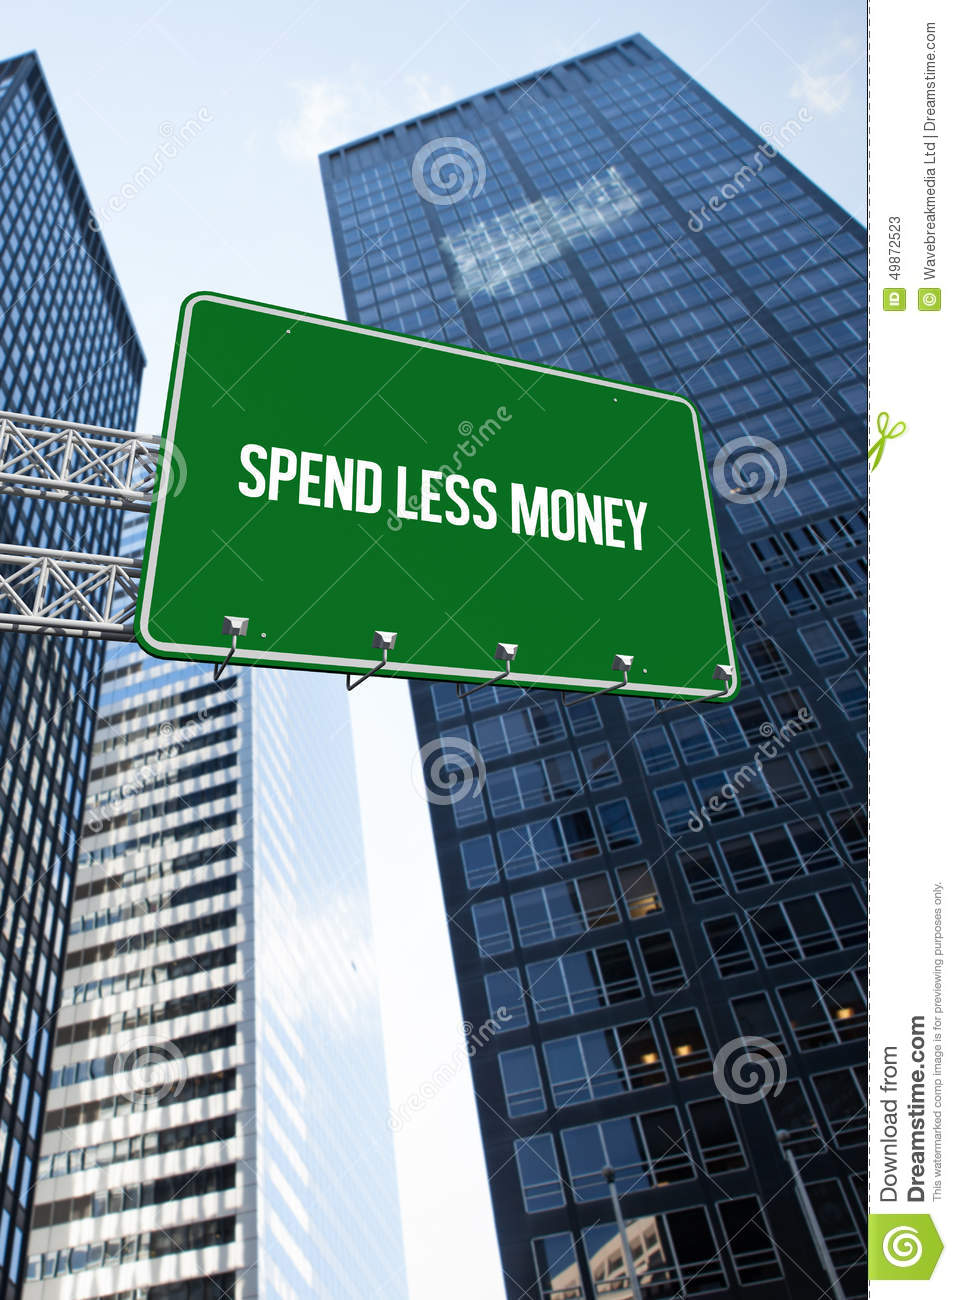 Spend Less Money Against Low Angle View Of Skyscrapers